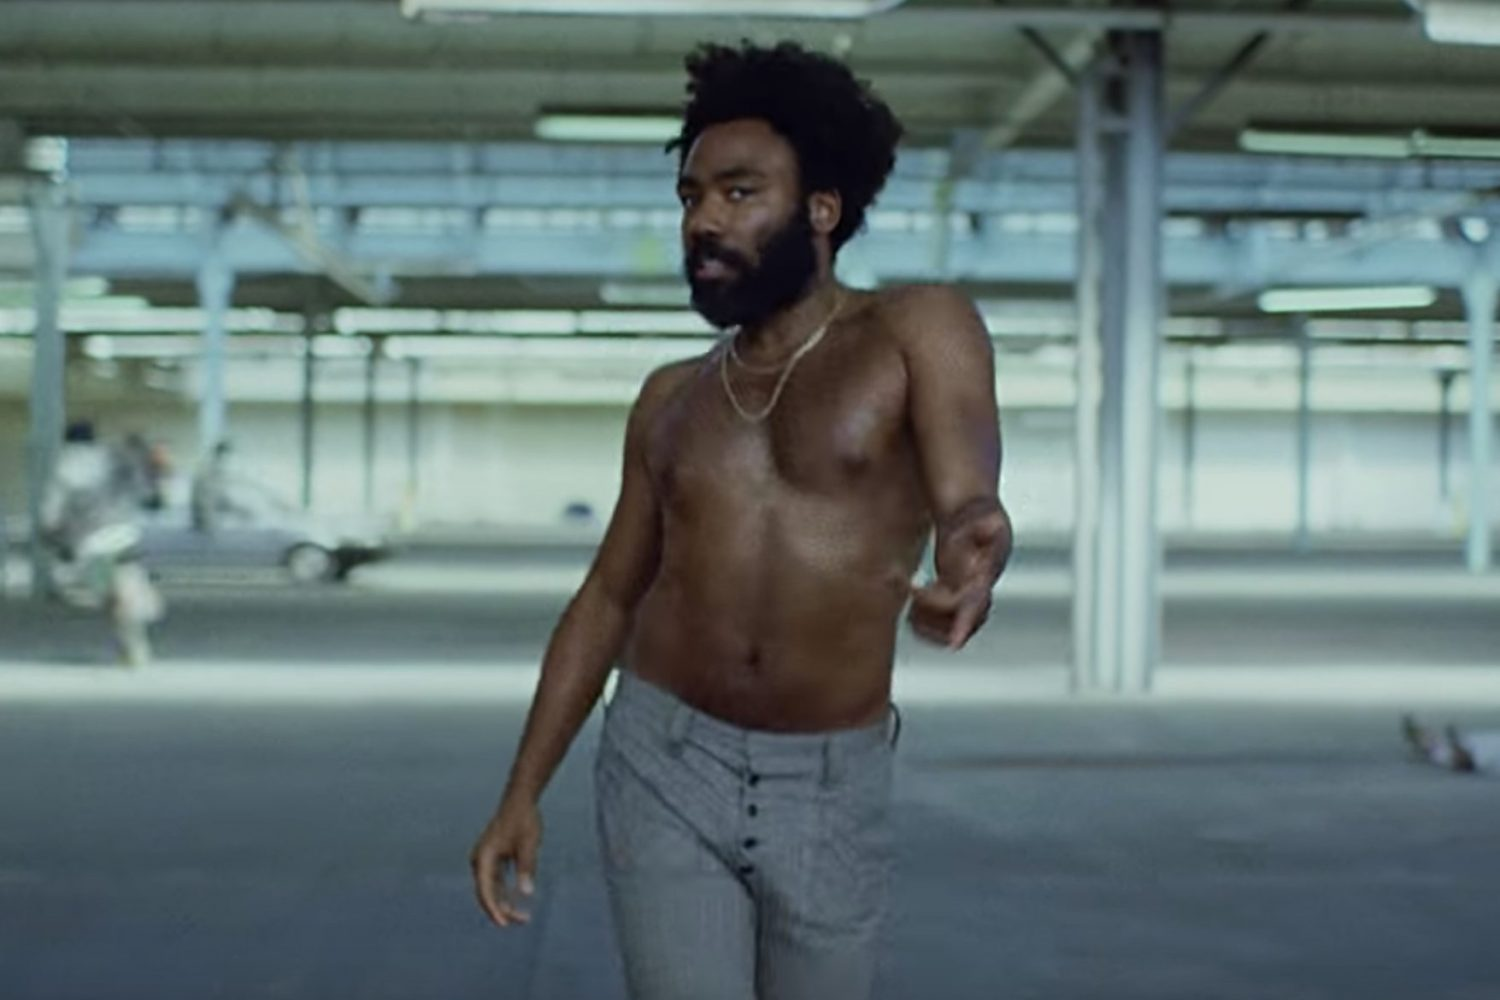 In an article about his latest album 3.15.20, a screenshot of Donald Glover